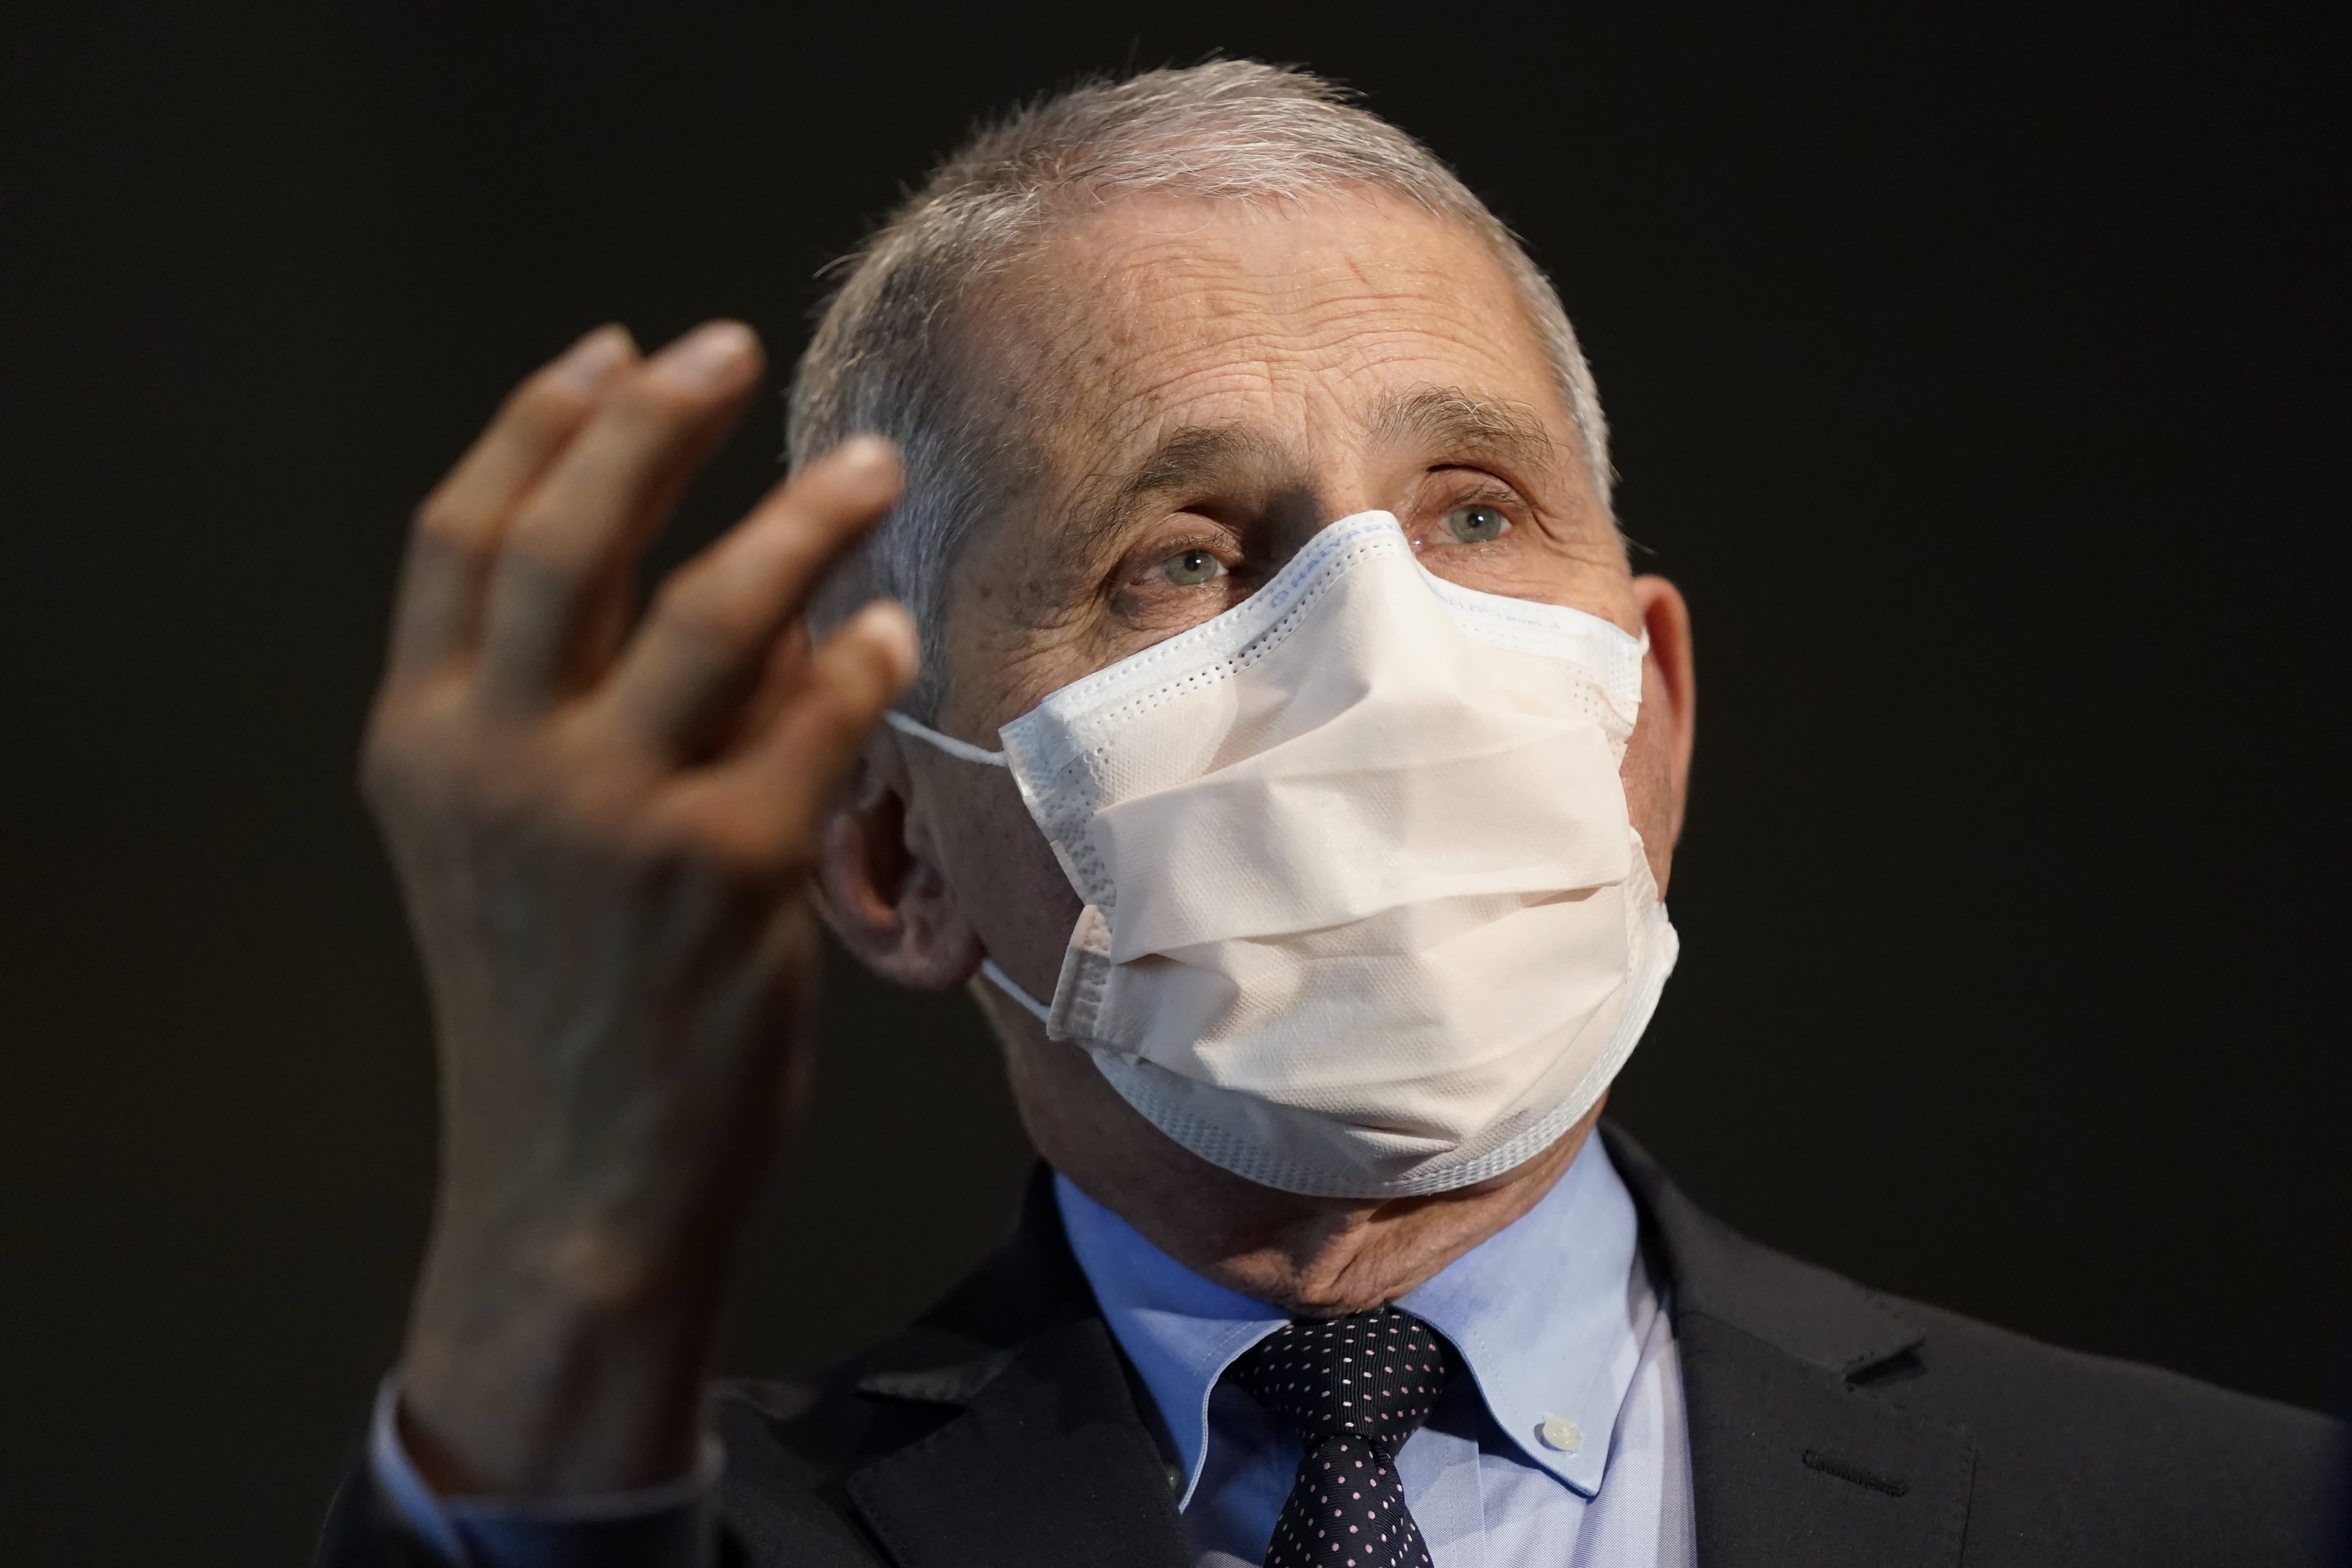 Dr. Fauci says slow Covid vaccine rollout has been 'disappointing'